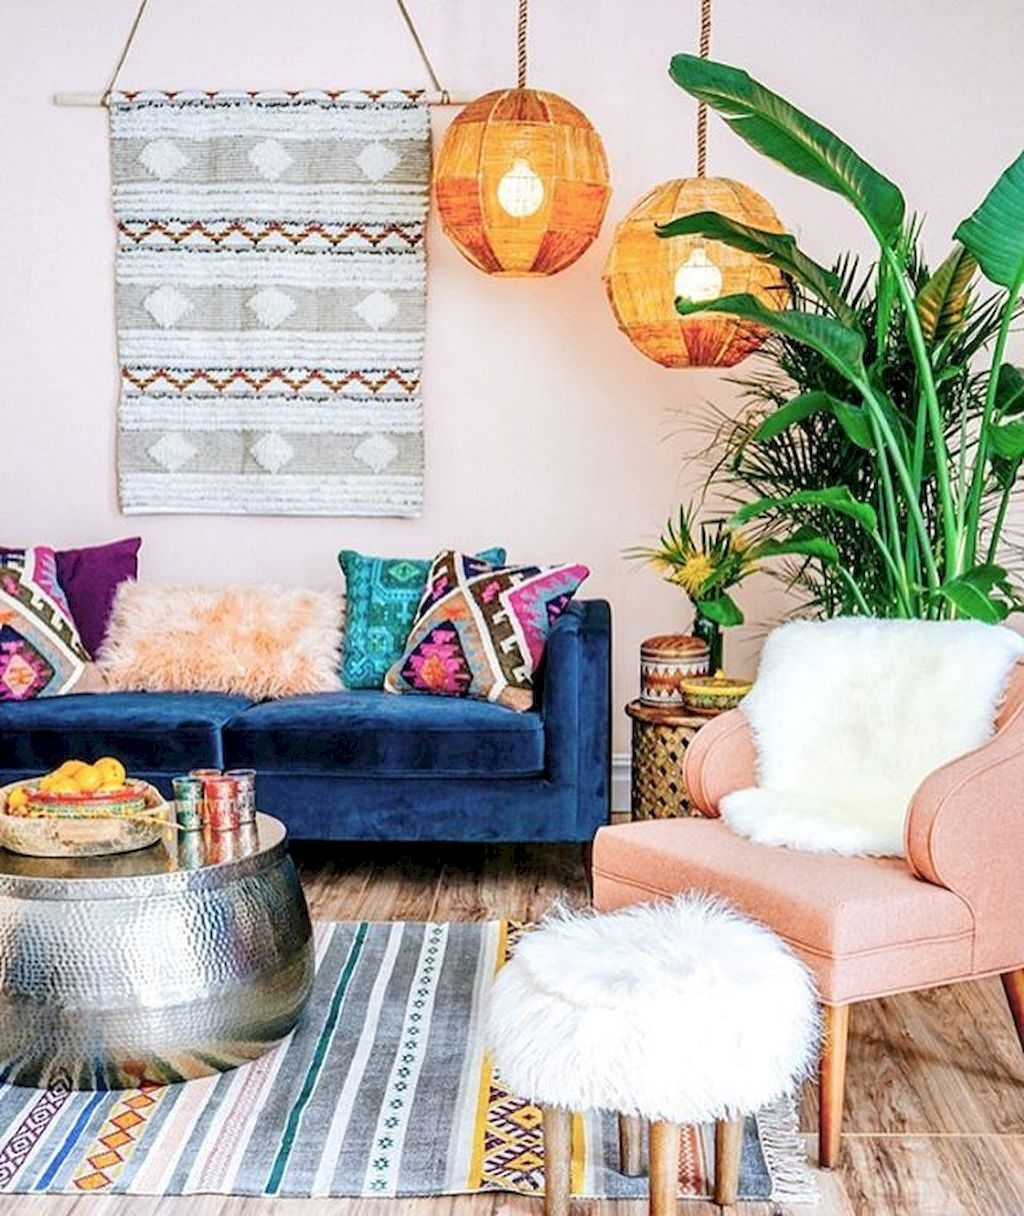 88 Beautiful Apartment Living Room Decor Ideas With Boho Style Fall